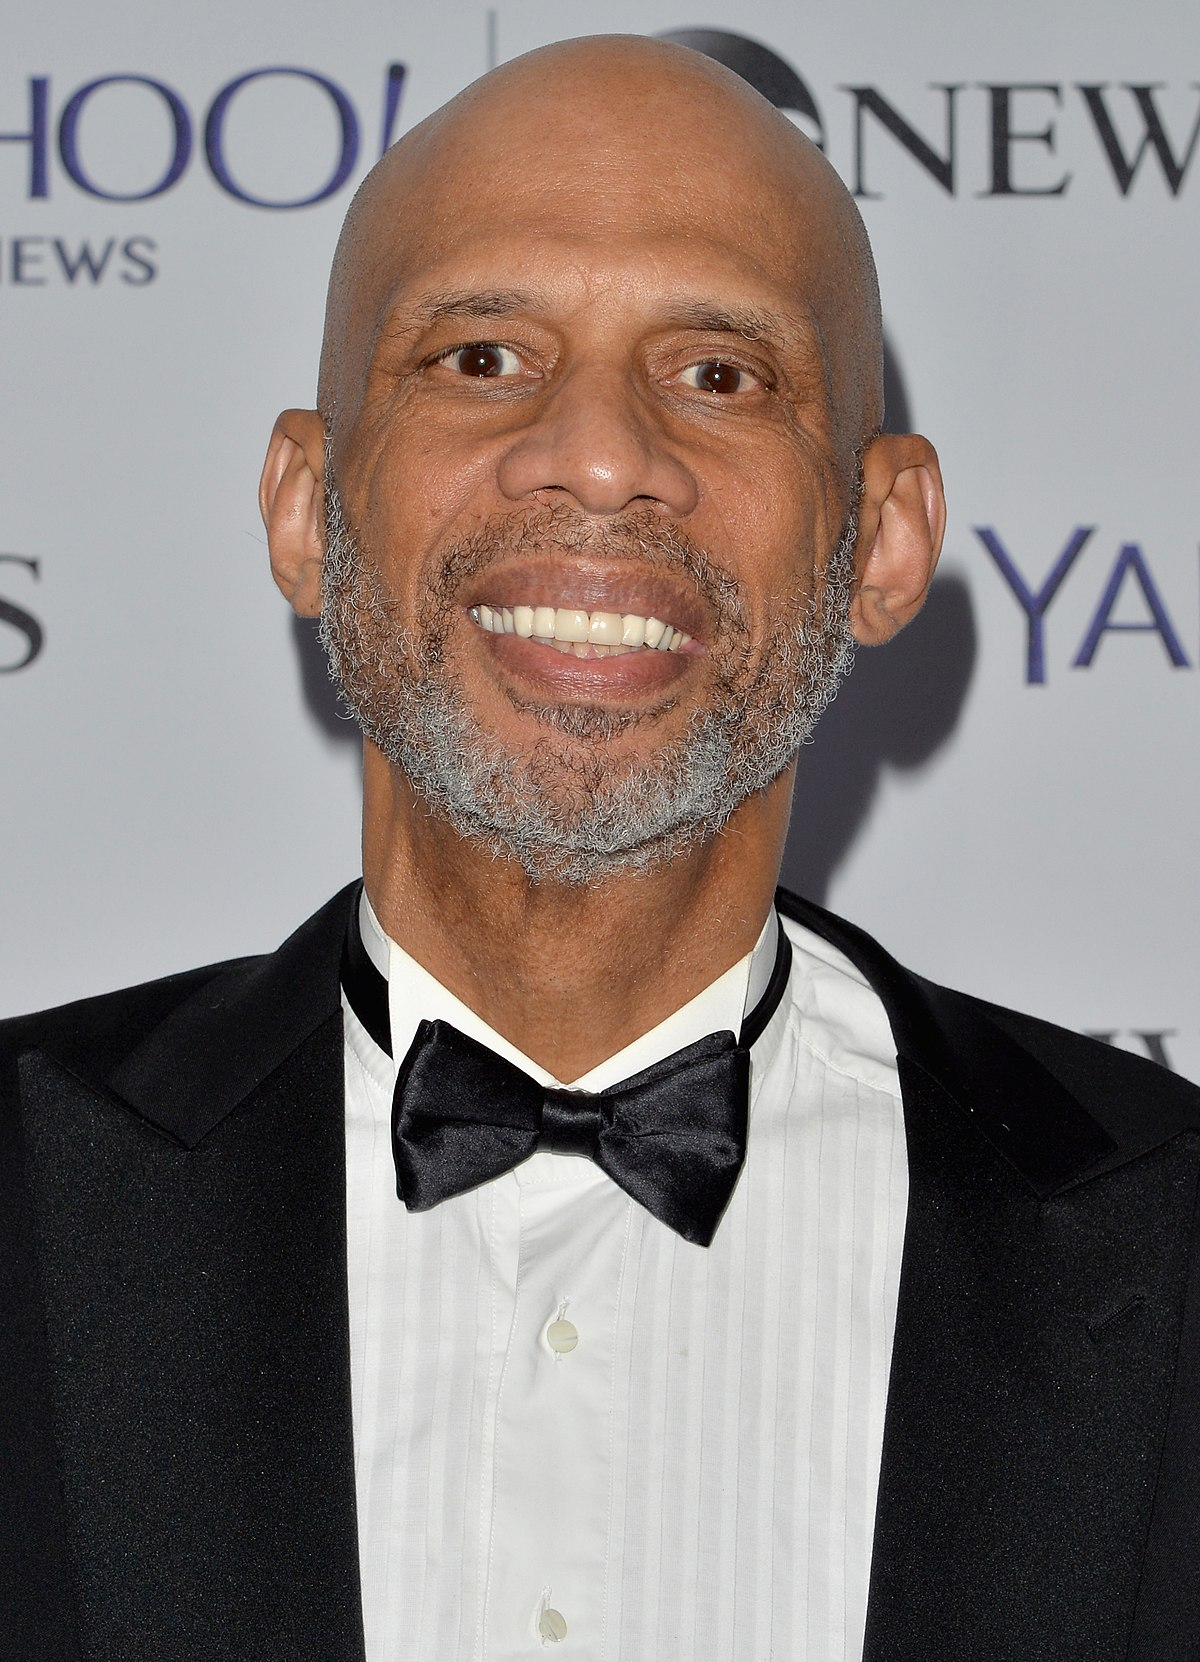 INTERESTING BITS: Who Knew? Kareem Abdul-Jabbar's Father was a Jazz Musician!